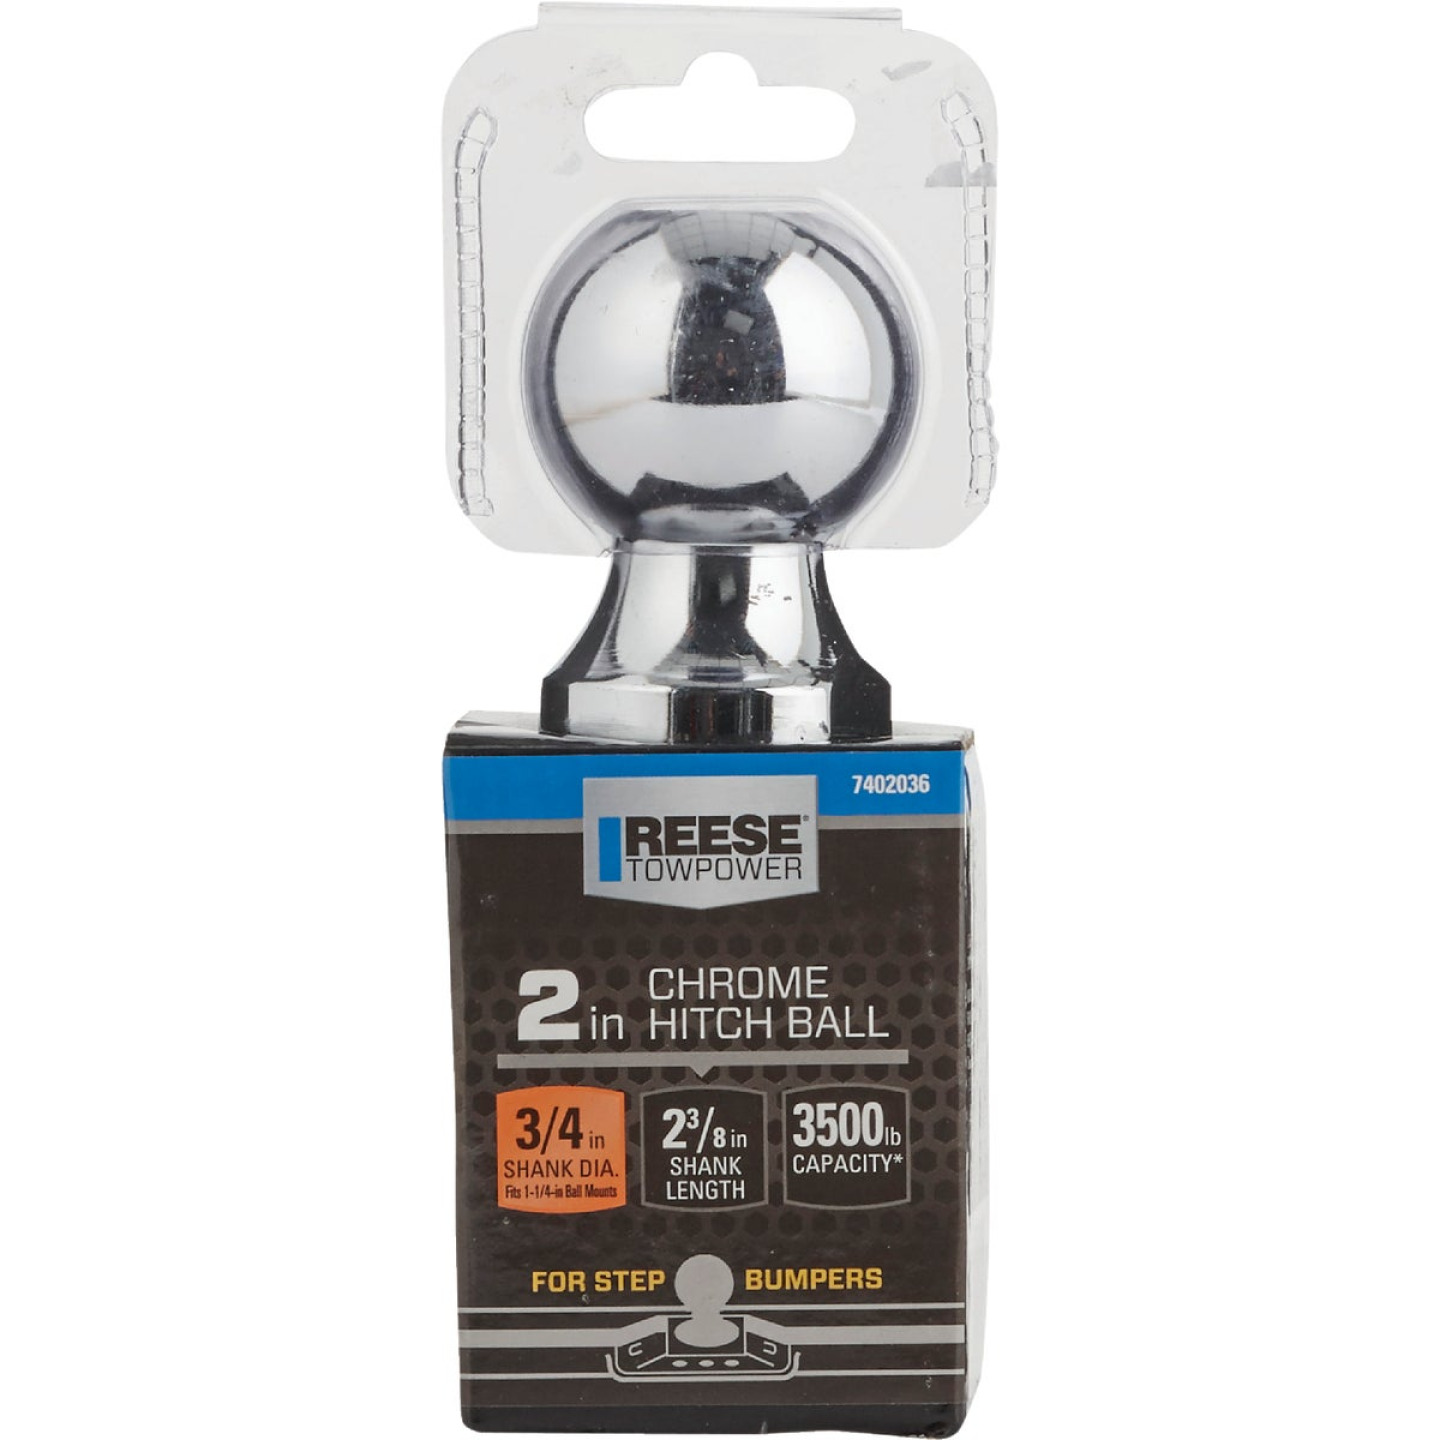 Reese Towpower 2 In. x 3/4 In. x 2-3/8 In. Hitch Ball Image 2